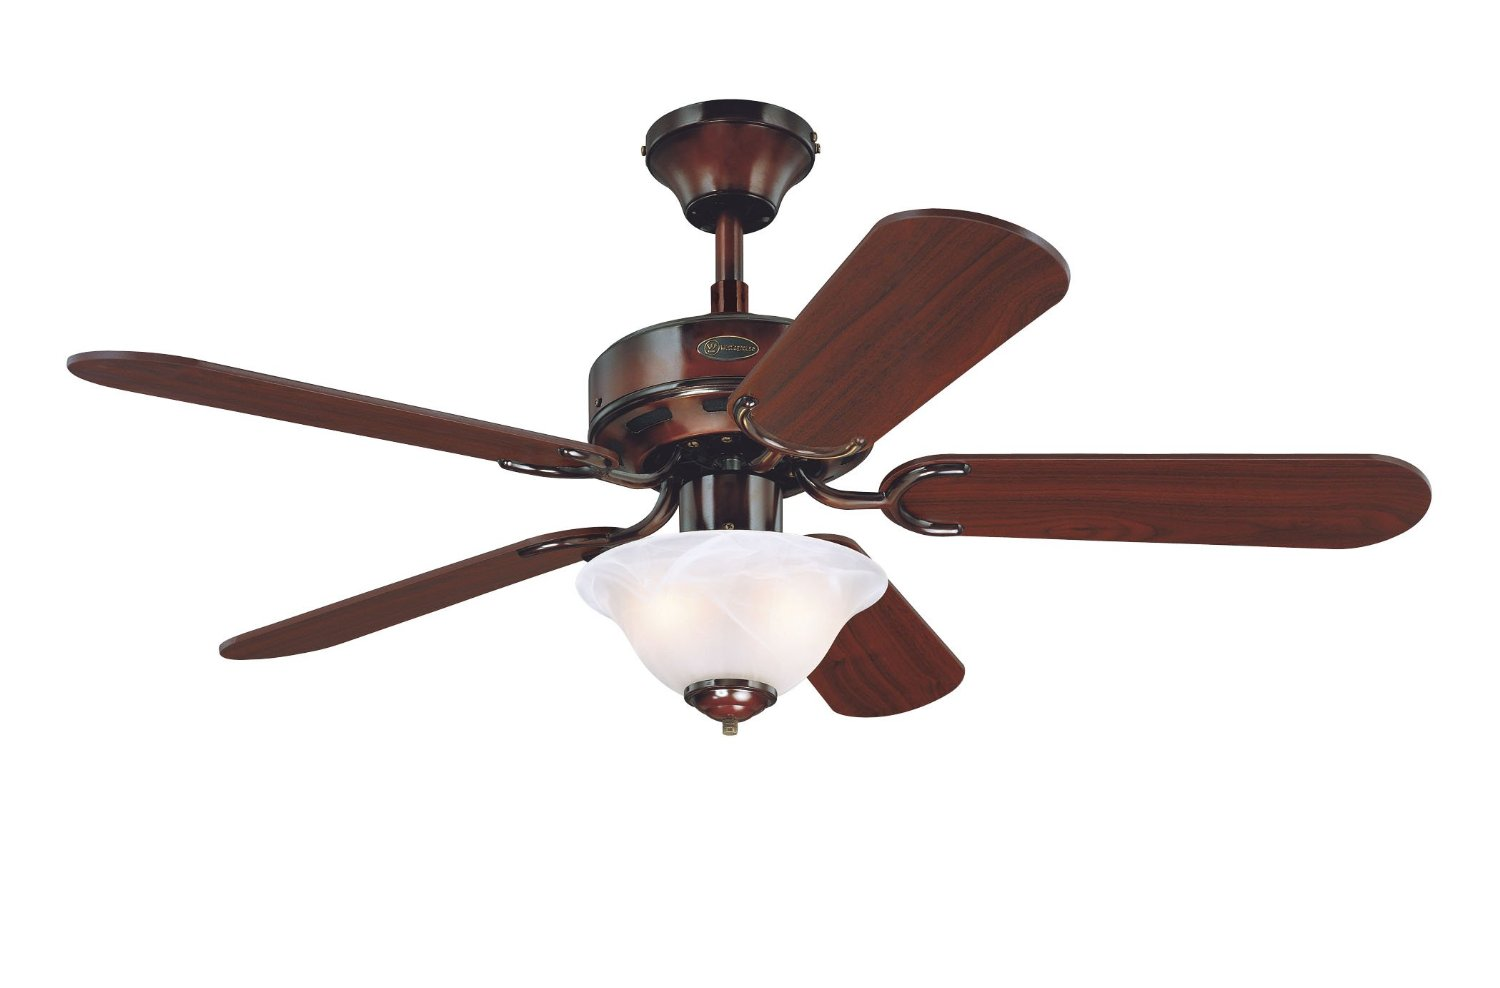 Cheap rustic ceiling fans find rustic ceiling fans deals on line at get quotations westinghouse 7826765 richboro se 42 inch ceiling fan rustic bronze finish aloadofball Gallery